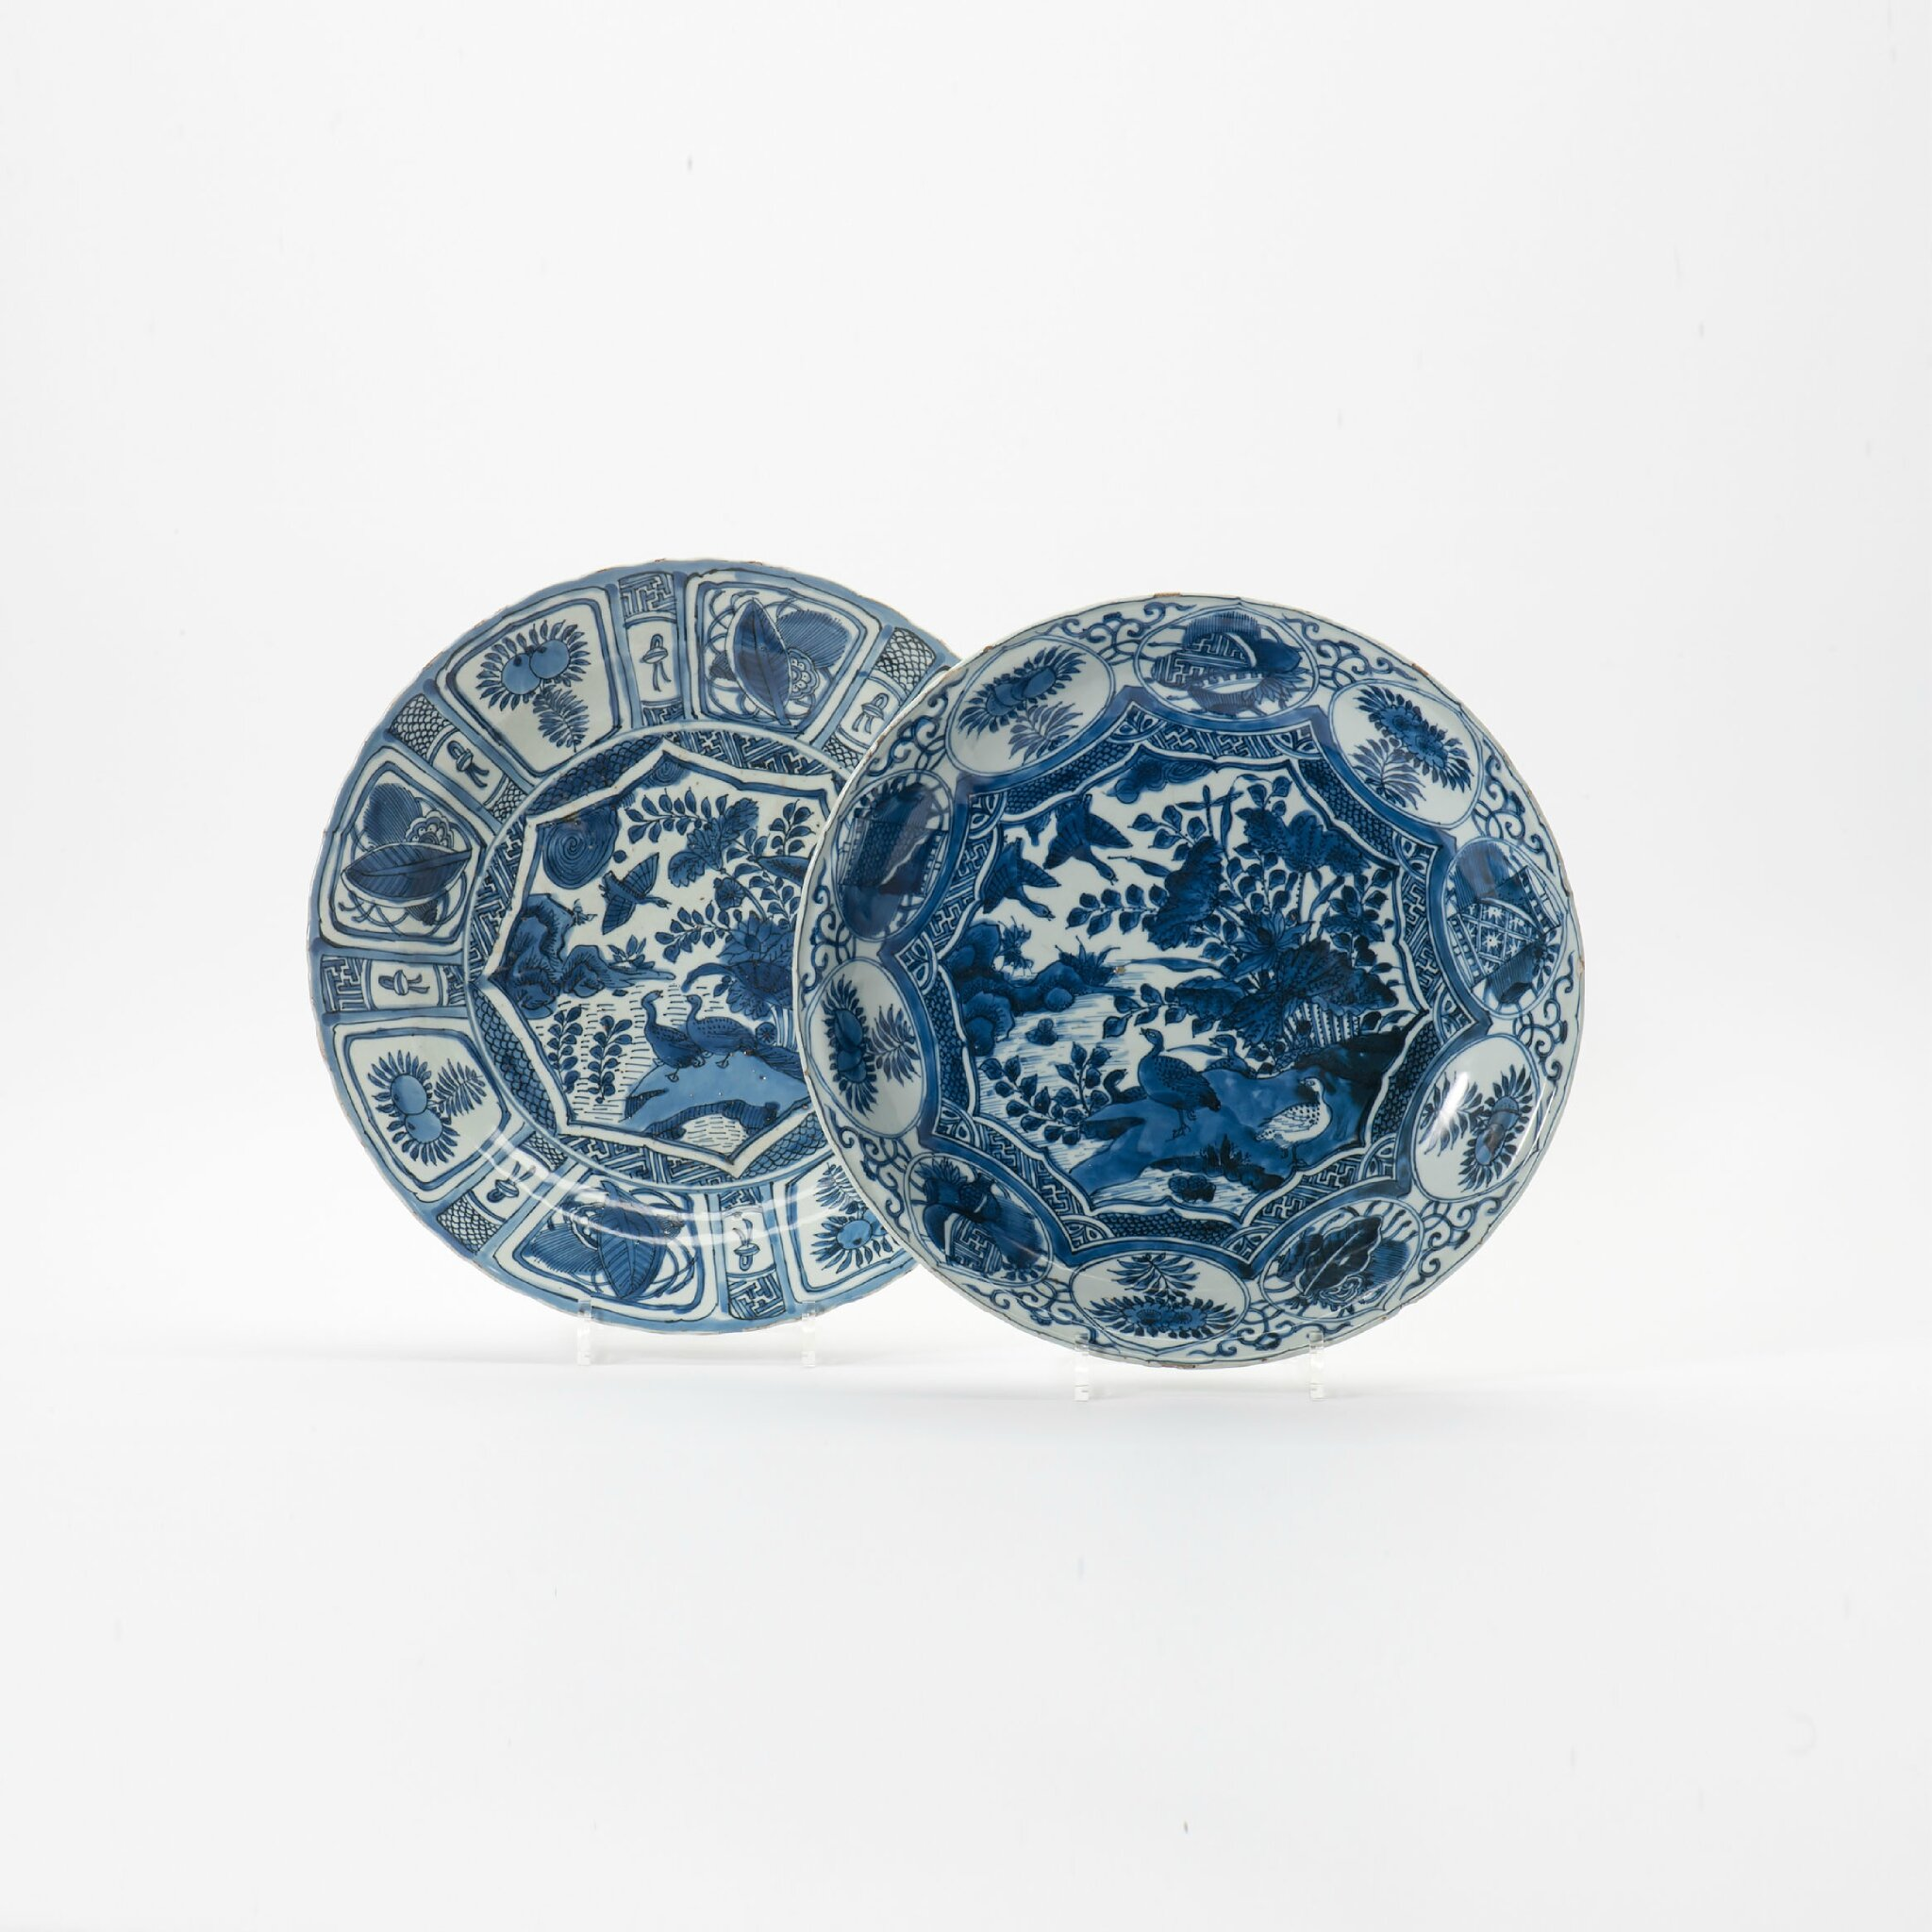 A Kraak porcelain dish and a dish, Wanli period (1573-1619)